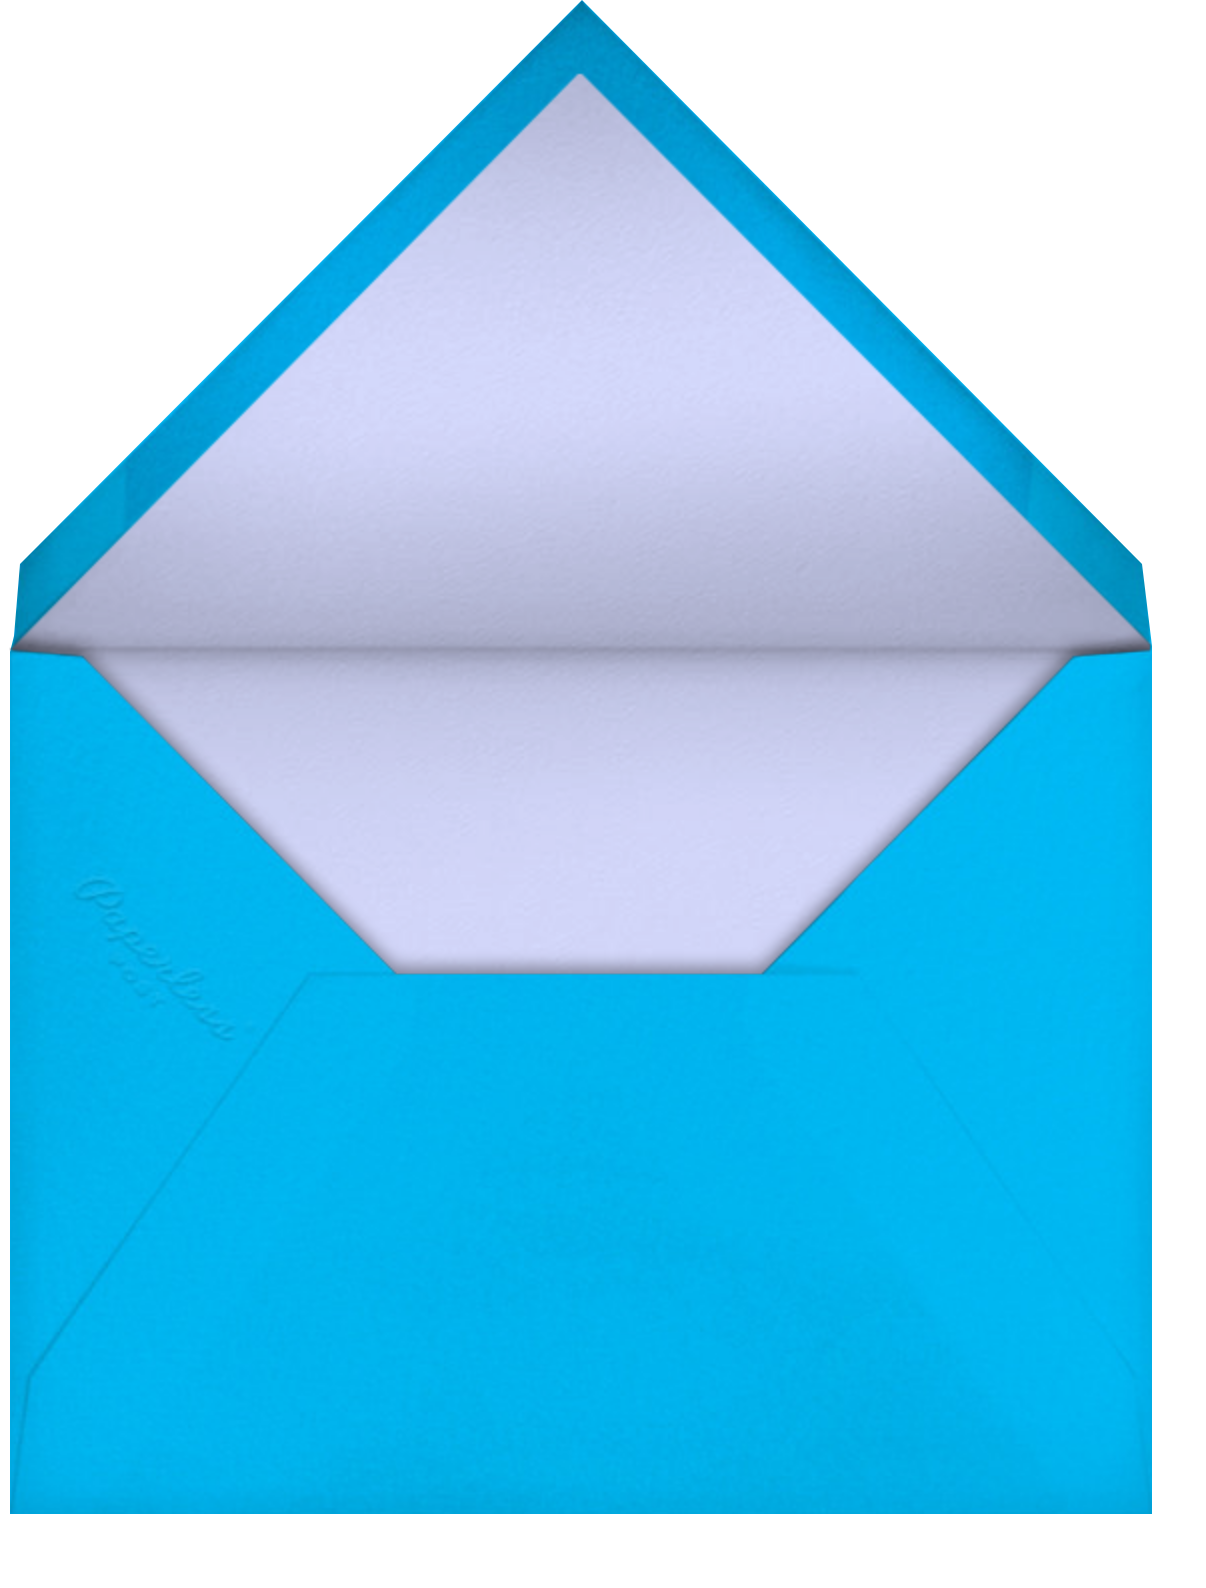 Gradient Painted - Blue - Paperless Post - Barbecue - envelope back